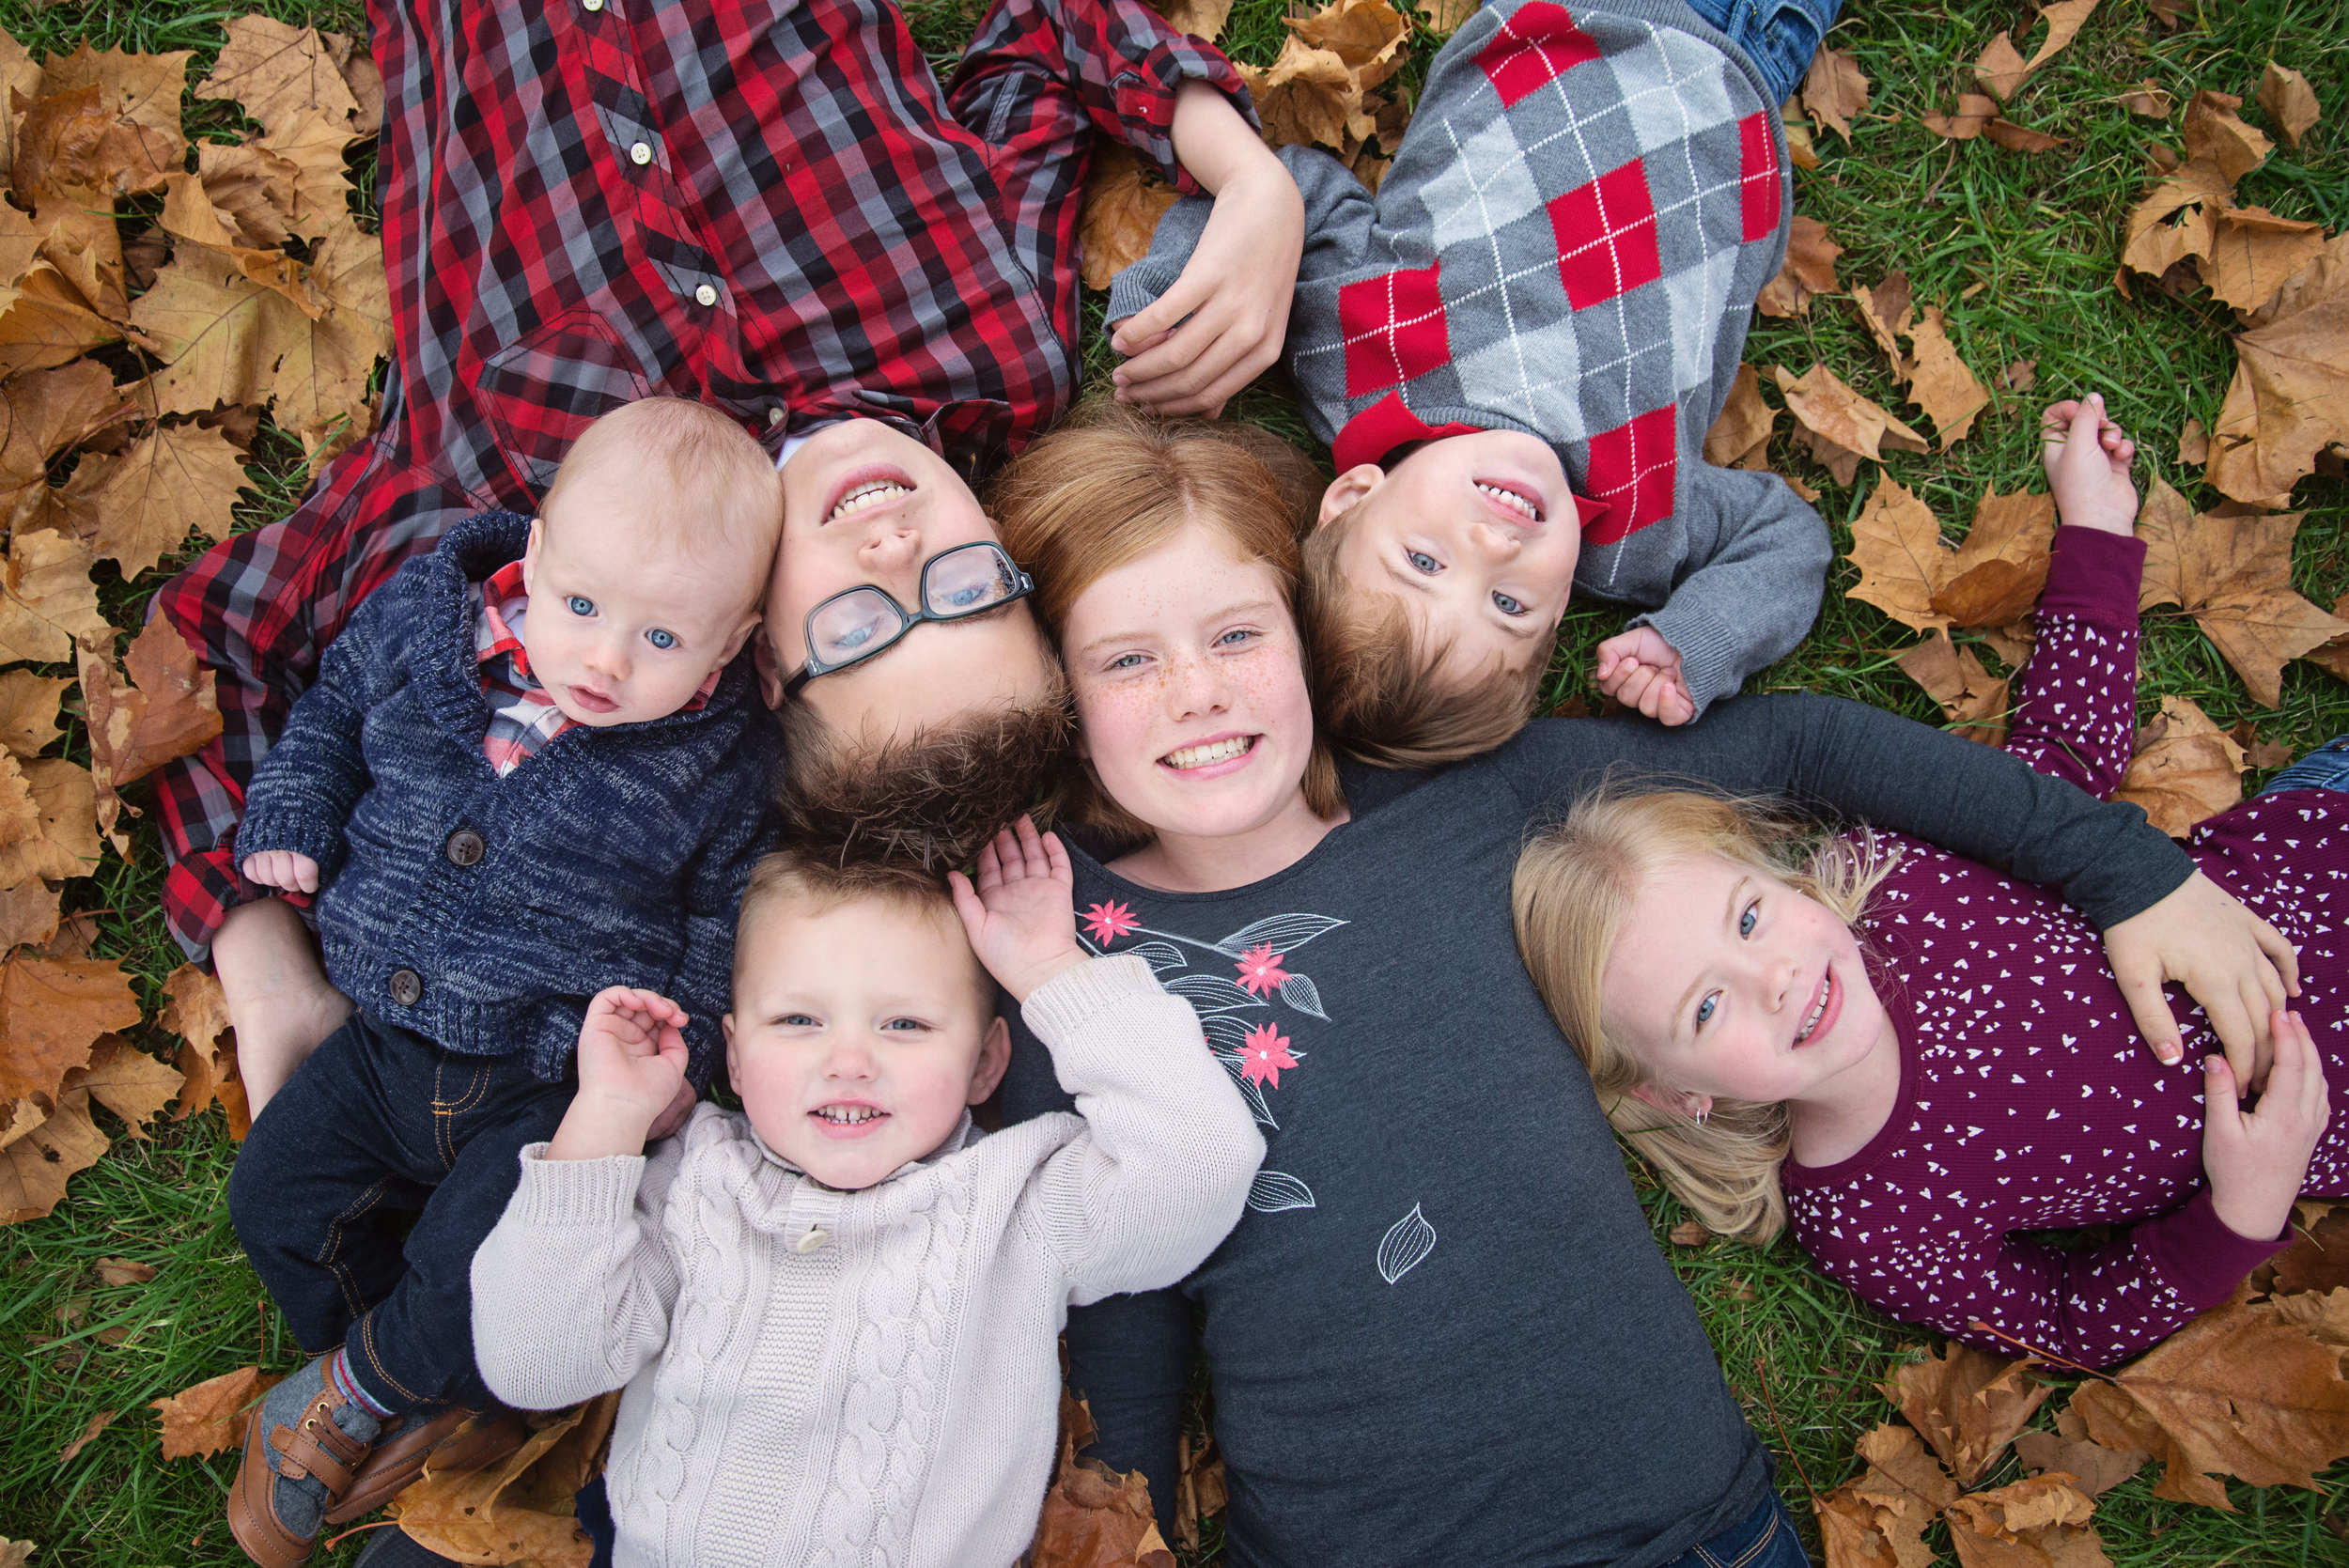 st-louis-childrens-photographer-six-cousins-laying-together-on-the-ground-looking-up.jpg